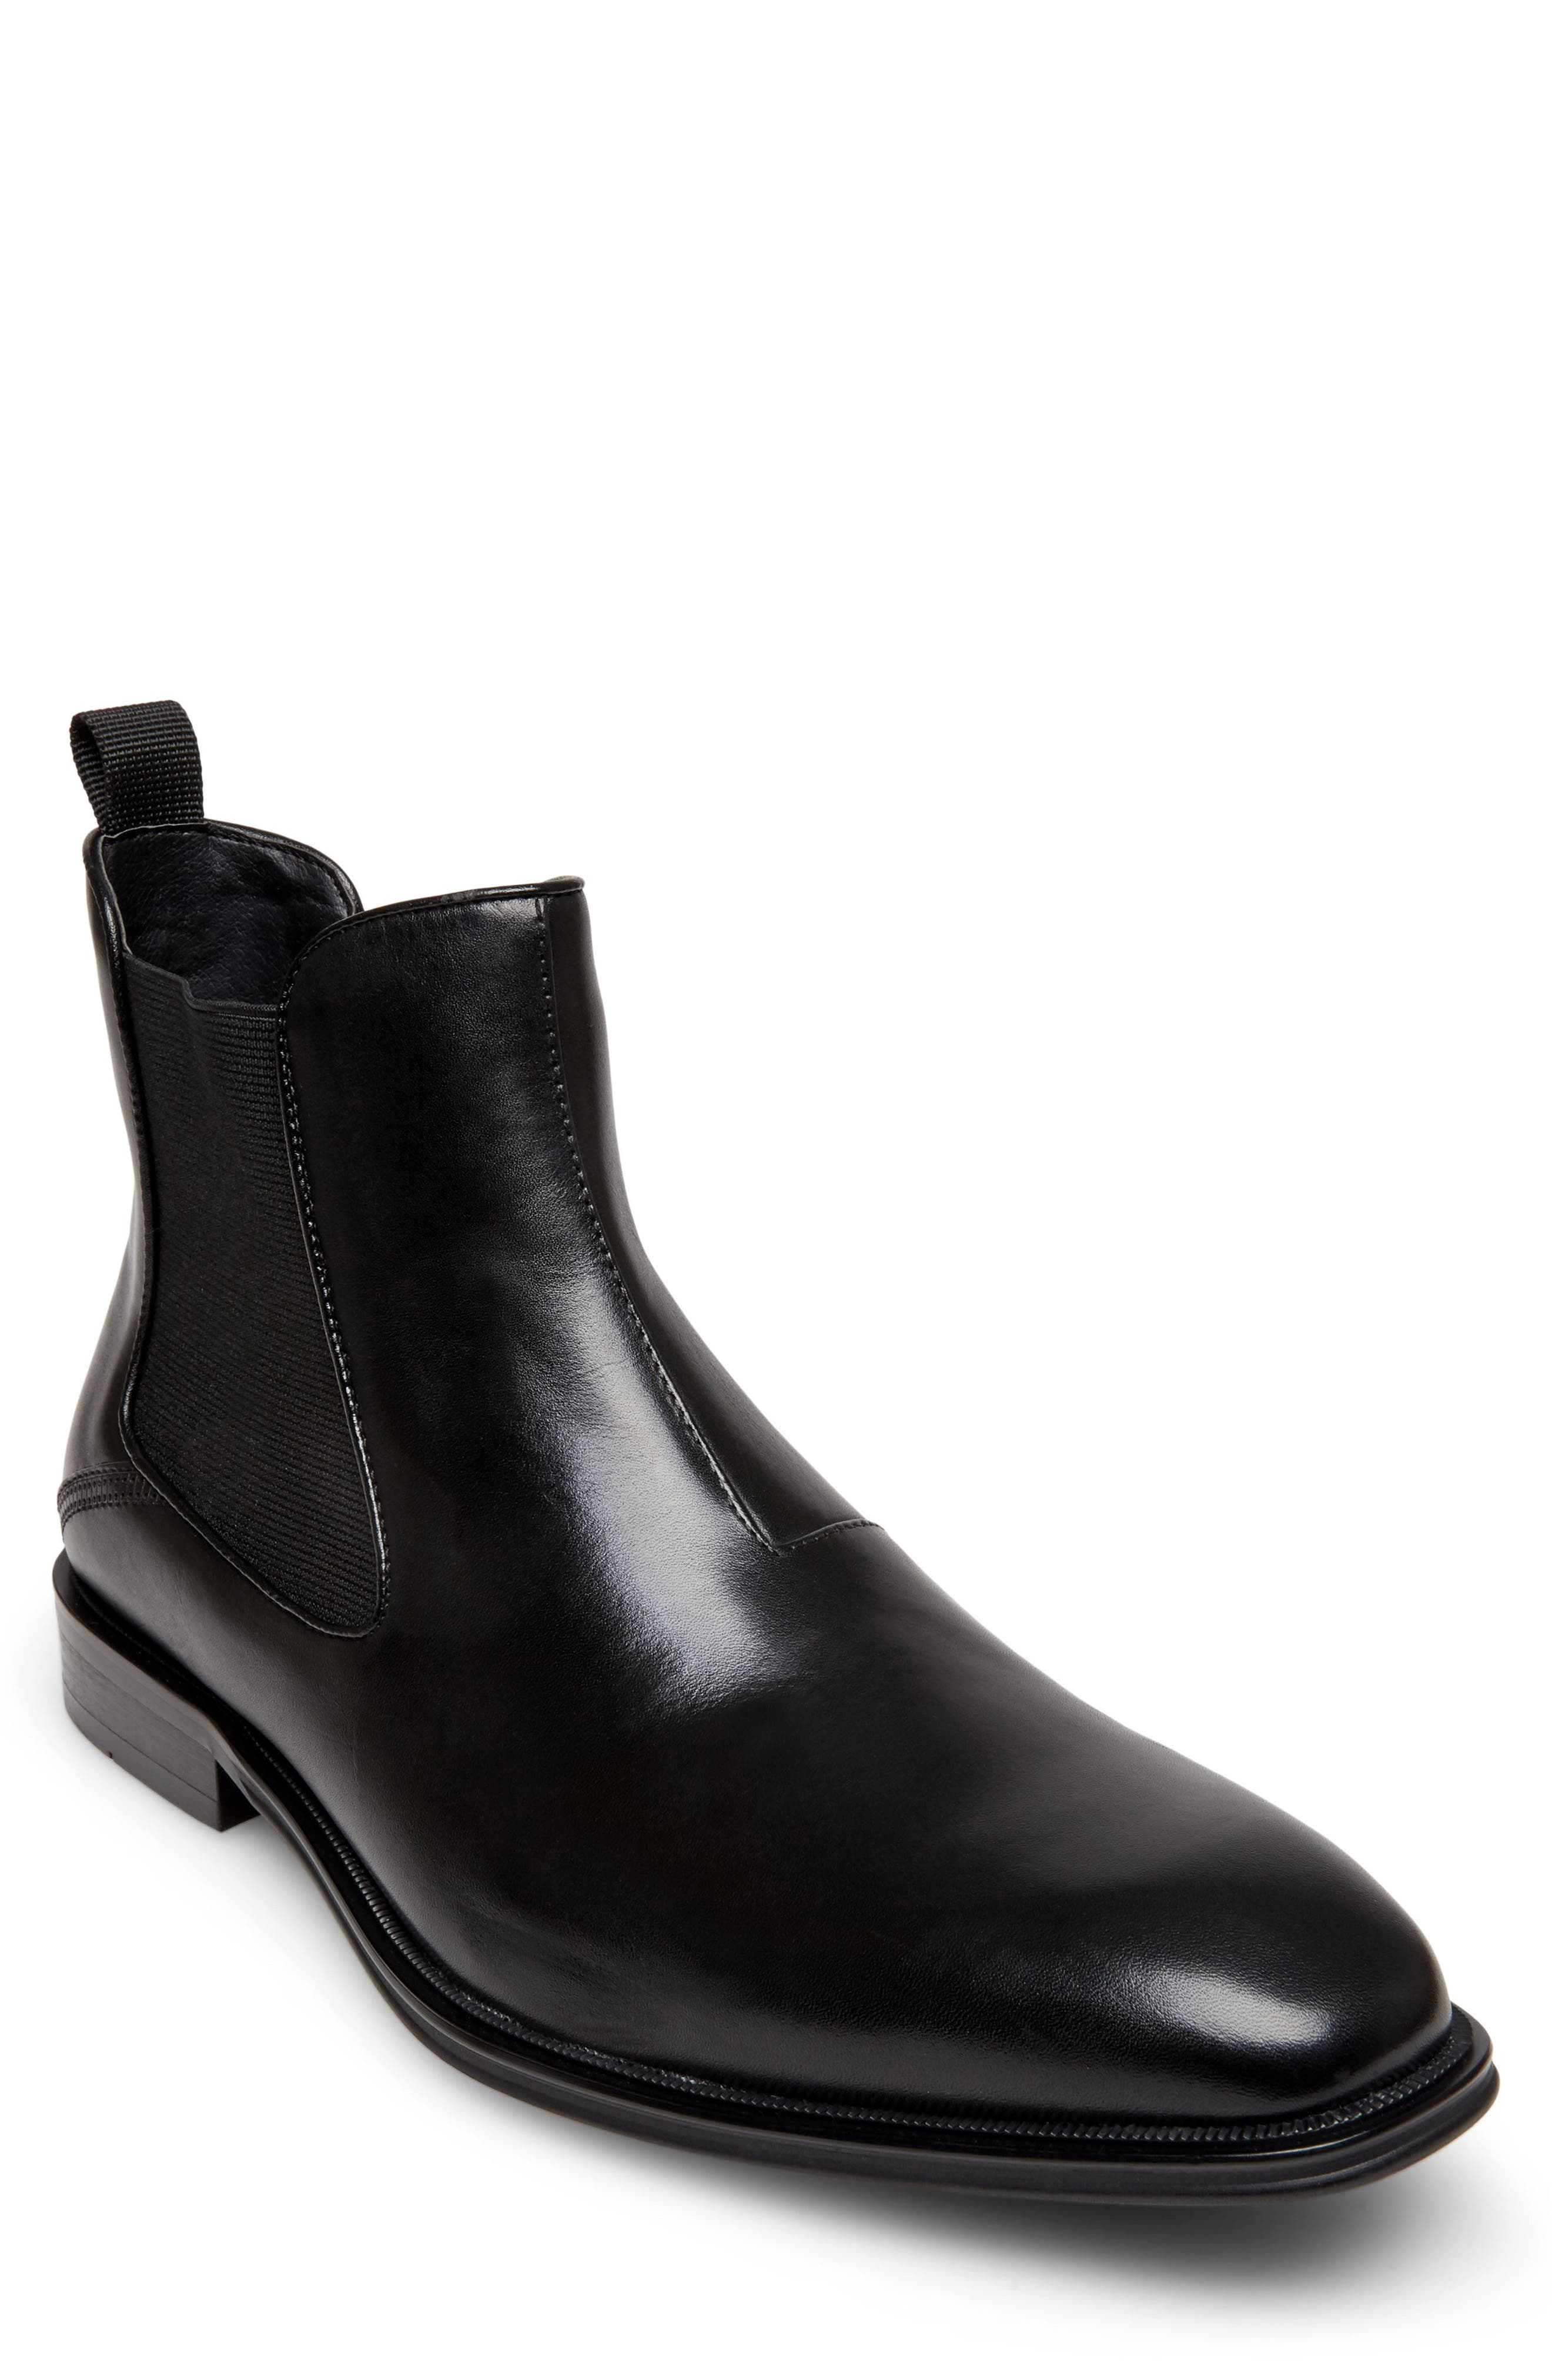 STEVE MADDEN Malice Chelsea Boot, Main, color, BLACK LEATHER